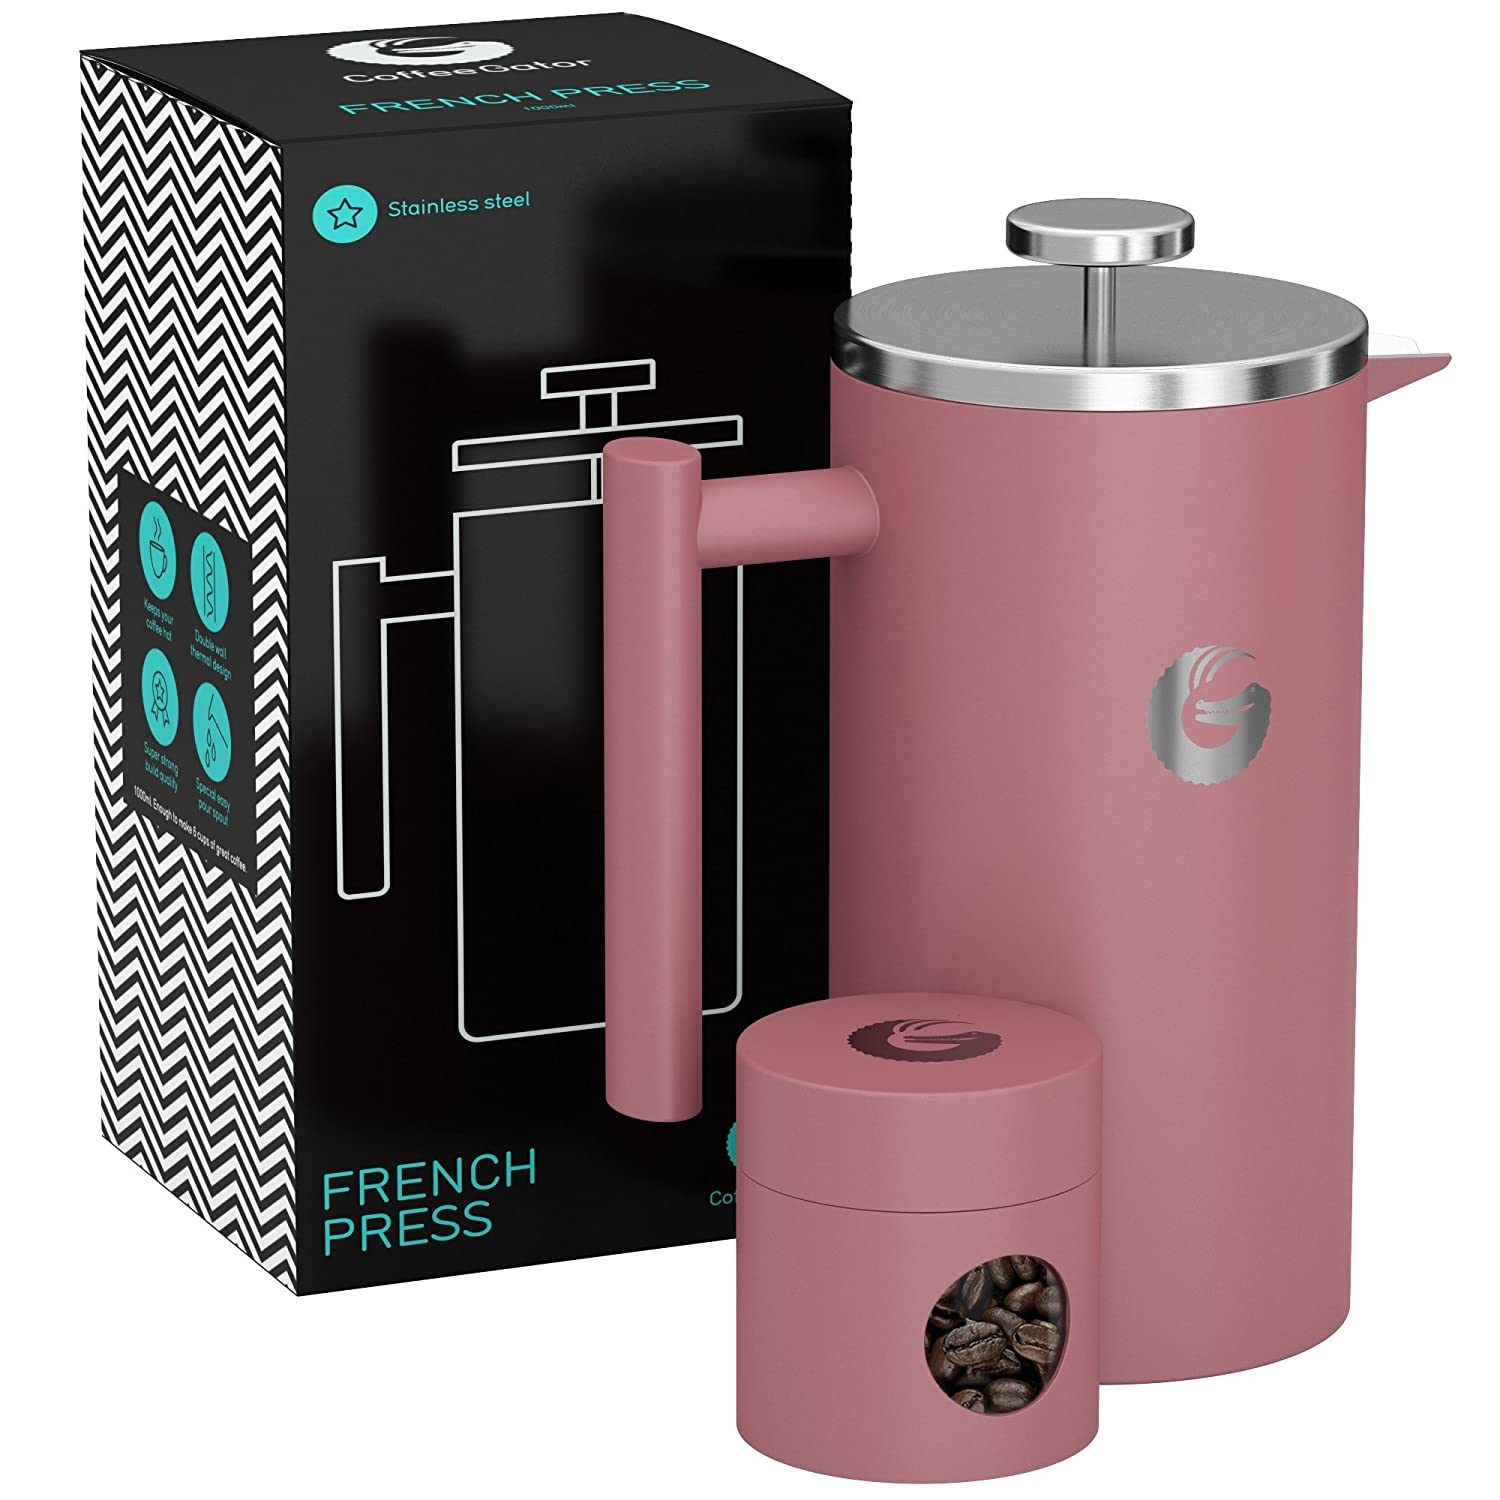 Large French Press Coffee Maker – Vacuum Insulated Stainless Steel With Double Filter, Travel Canister and eBook – By Coffee Gator, 34floz, Pink